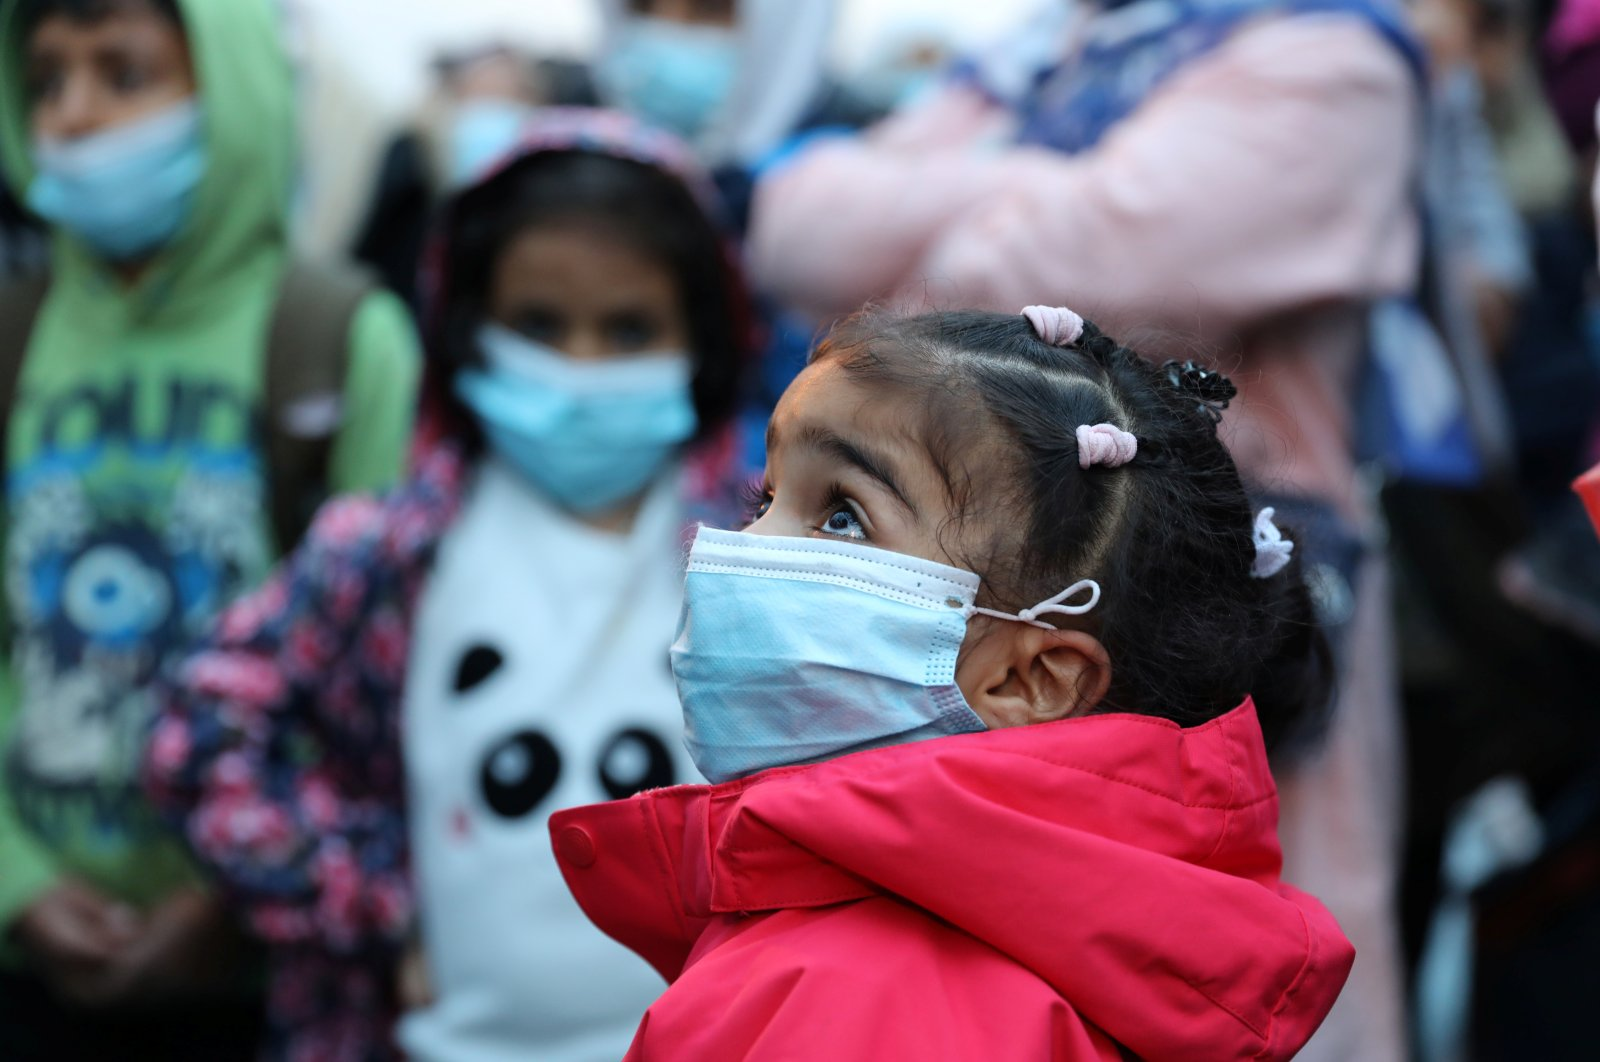 A migrant girl from the Moria camp in Lesbos waits to board a bus at Piraeus port in Athens following the coronavirus disease (COVID-19) outbreak, Greece, May 4, 2020. (Reuters Photo)